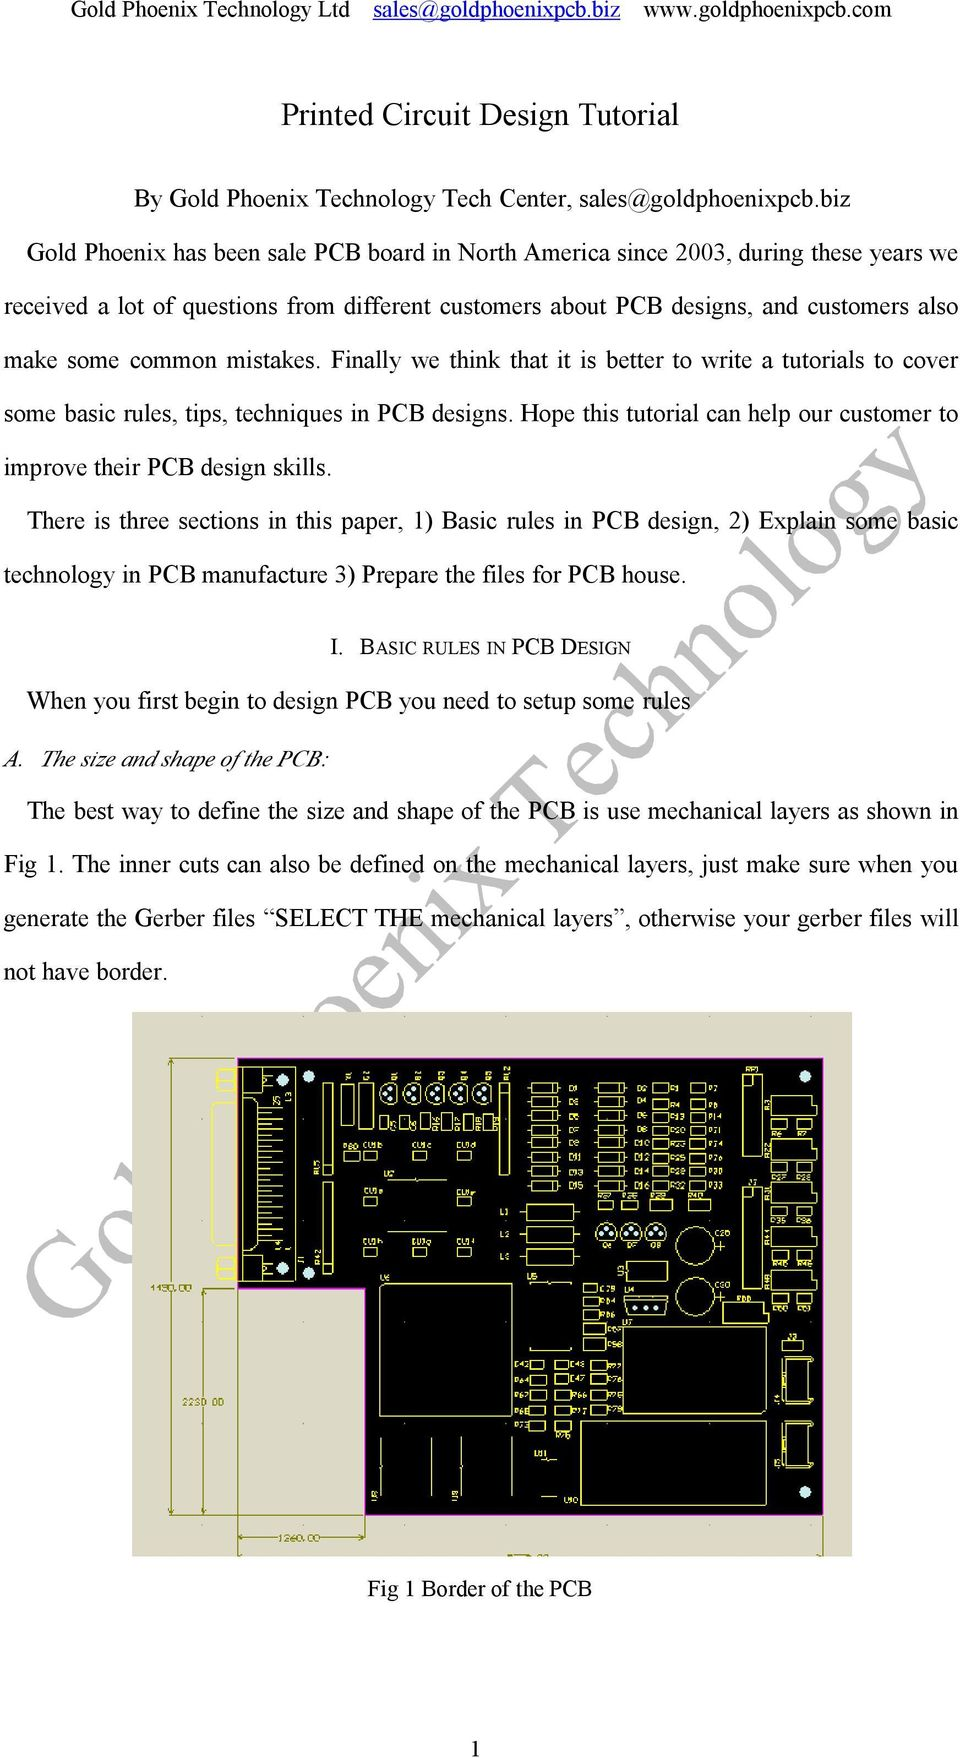 Printed Circuit Design Tutorial Pdf Frequency Pcb Layout Services Board Assembly For Sale Mistakes Finally We Think That It Is Better To Write A Tutorials Cover Some